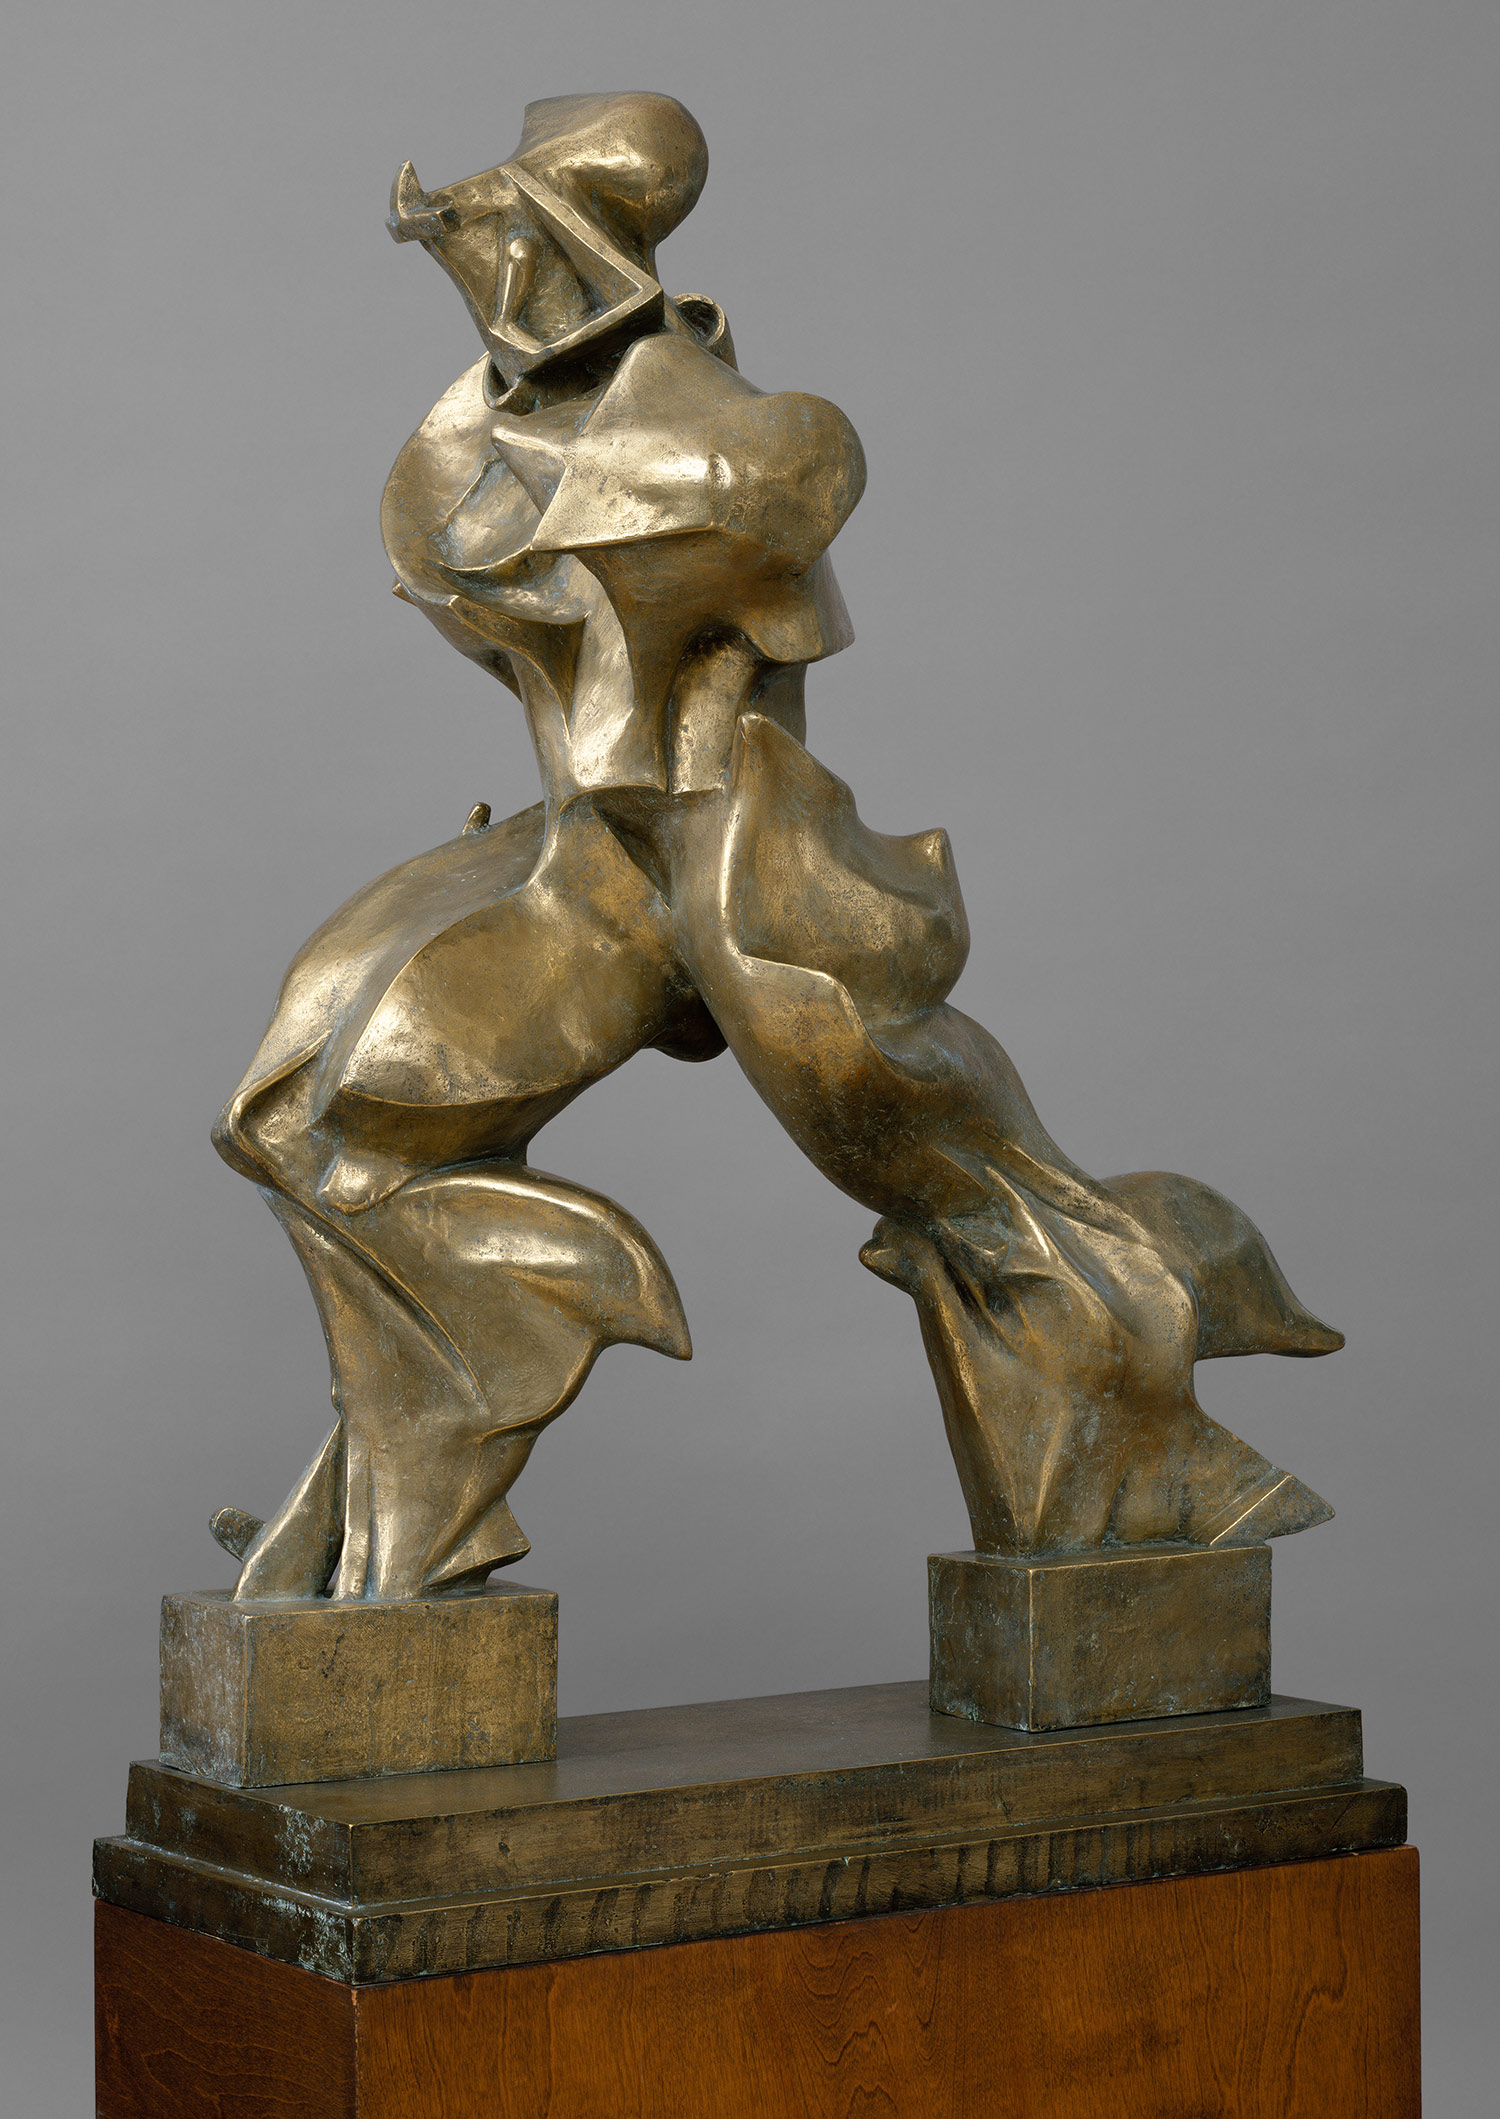 Unique Forms of Continuity in Space depicts a human-like figure seemingly flying or gliding through air. A clinging drapery whips back around his legs, giving the sculpture an aerodynamic and fluid form. Instead of a traditional pedestal, the figure is only bound to the ground by two blocks at his feet. The figure is also armless and without a discernibly real face.